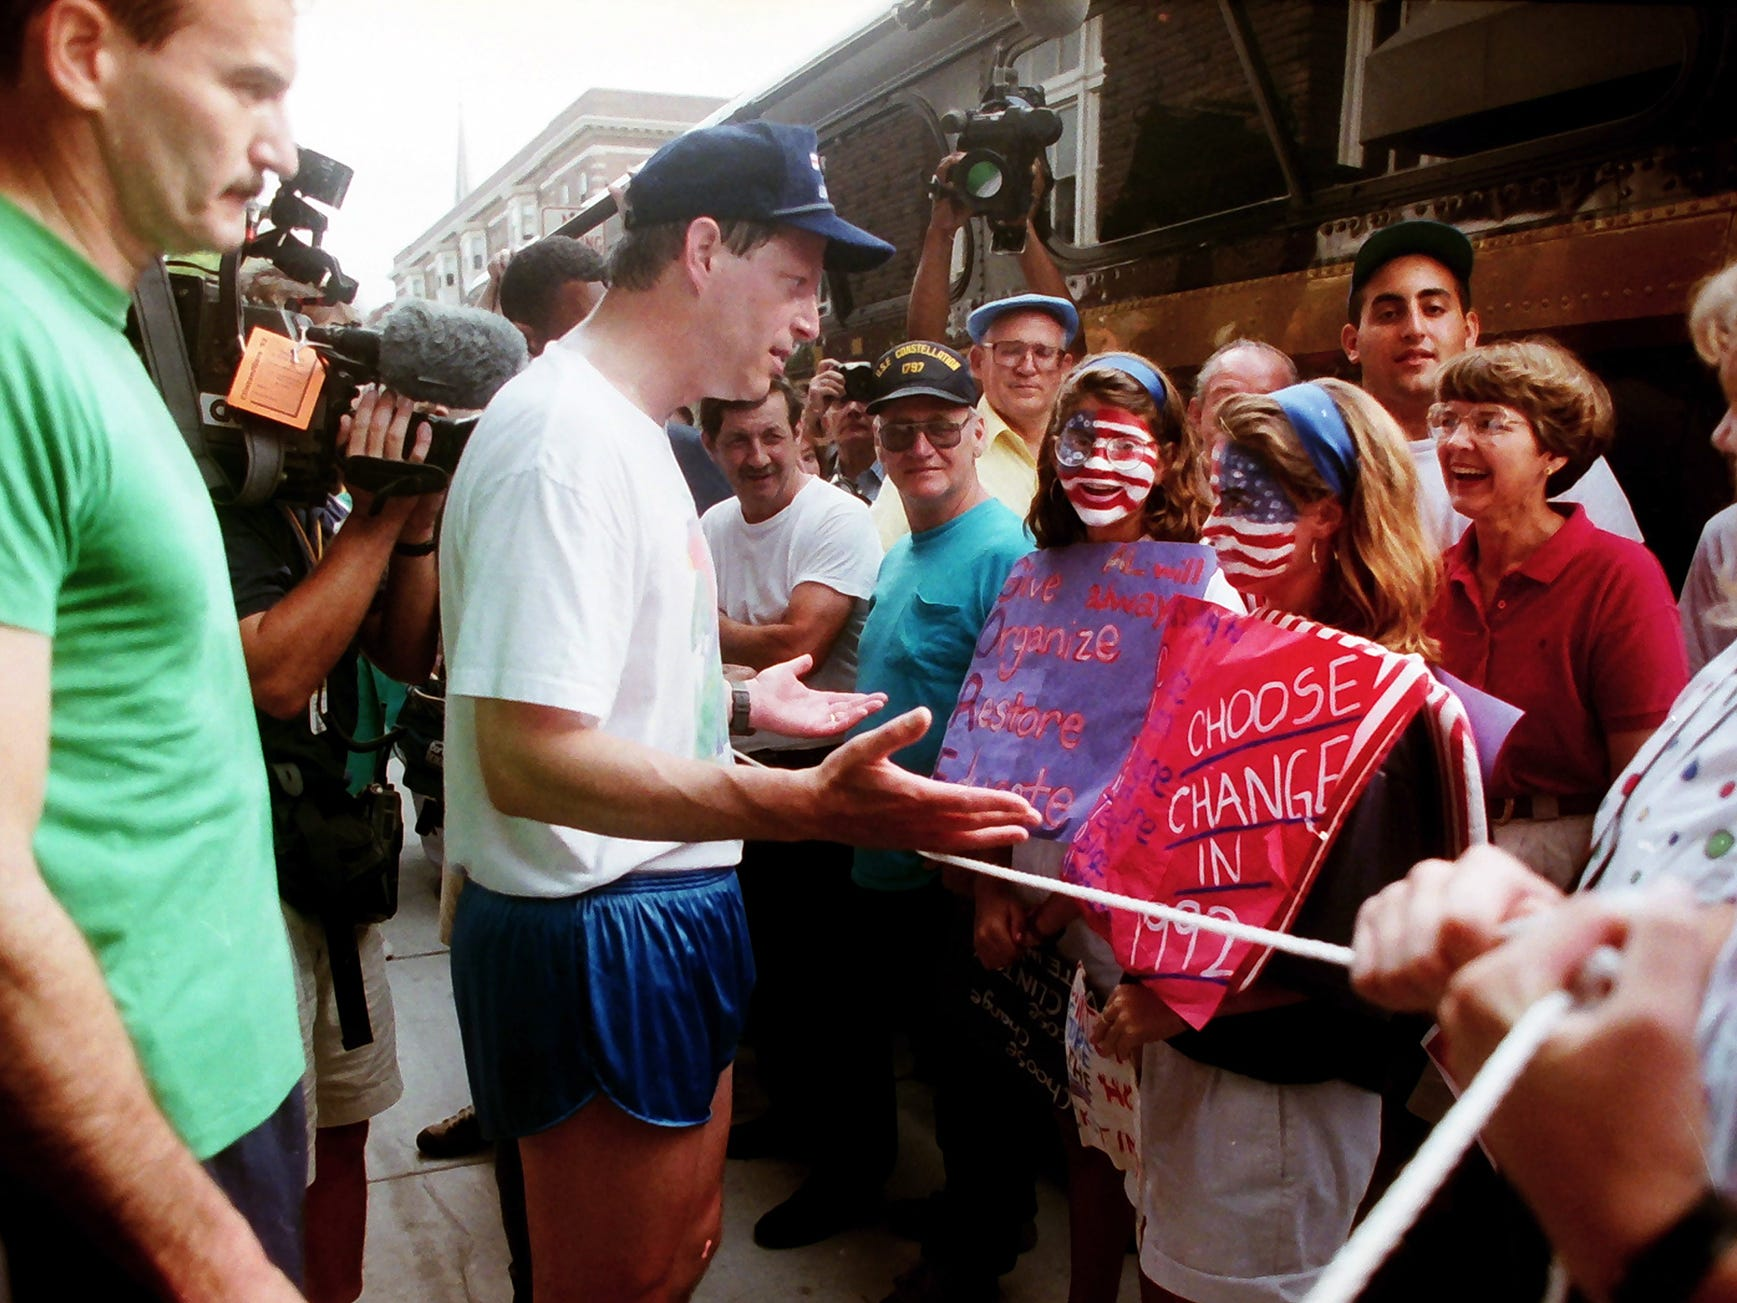 Al Gore, wearing shorts, talks to supporters outside the Yorktowne Hotel during a visit to York on July 18, 1992 after a run through York with Bill Clinton. Hillary Clinton and Tipper Gore accompanied their husbands, Dem nominees Bill Clinton and Al Gore, on a 1,000-mile bus trip after winning their party's nod in July 1992.